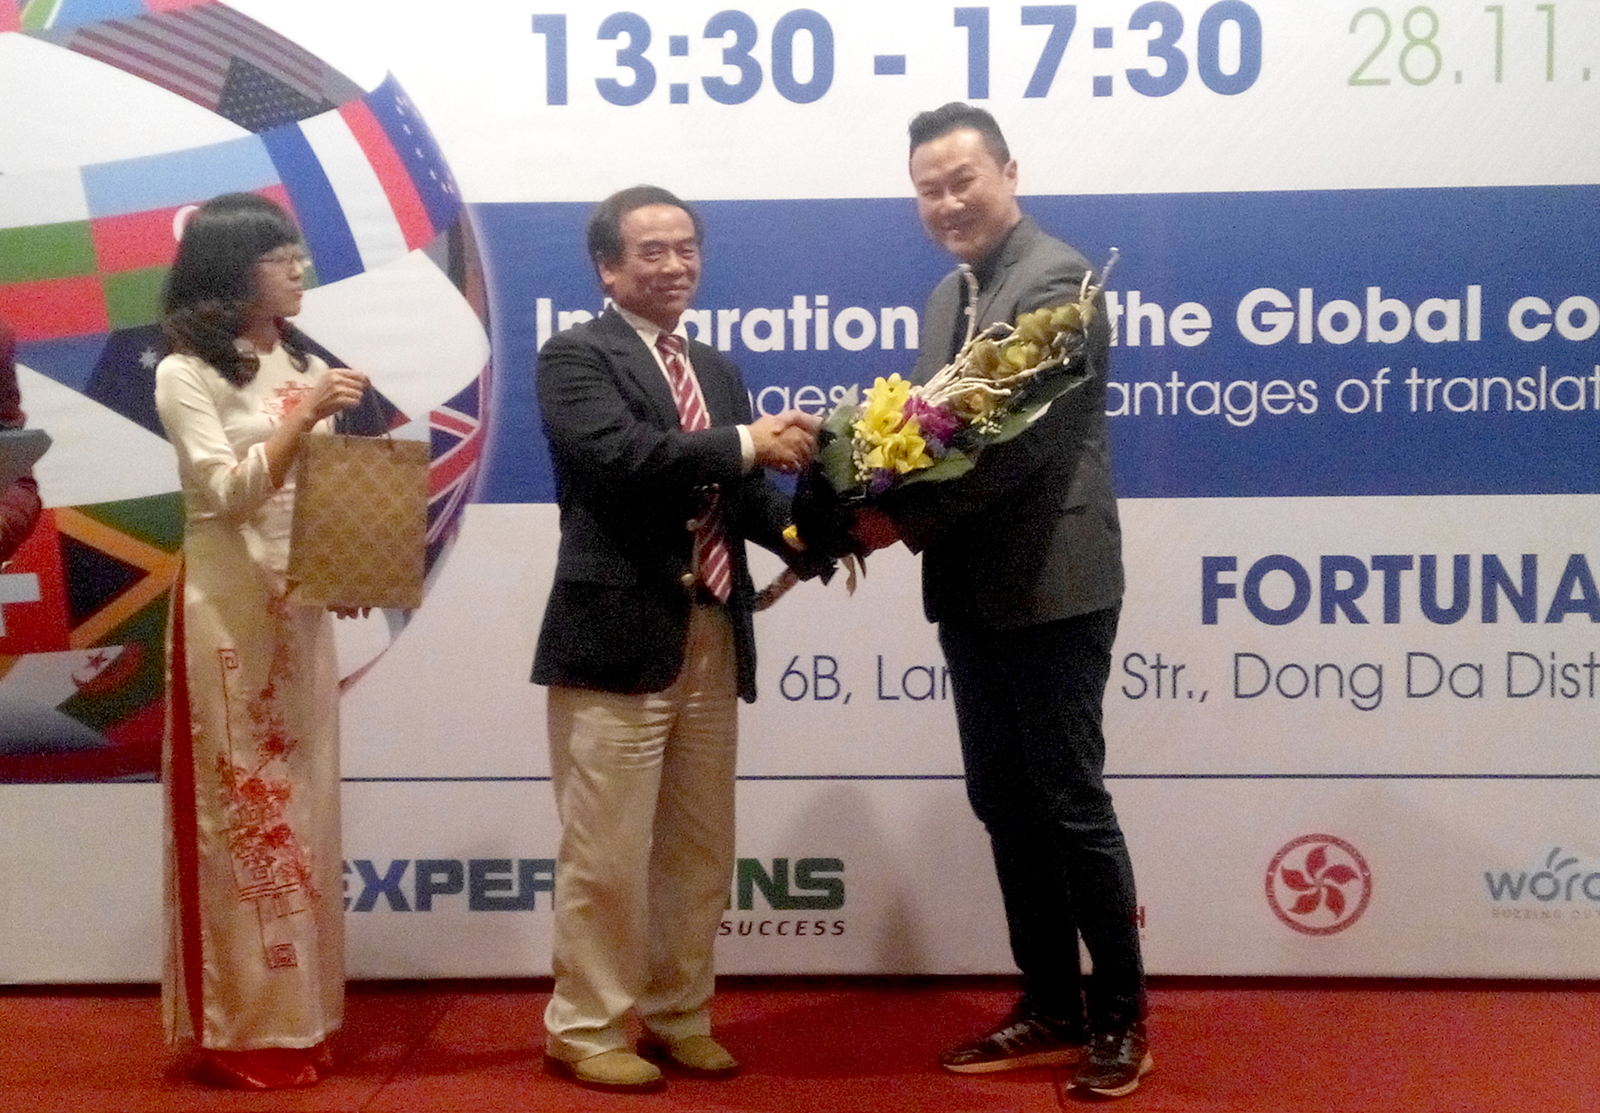 During the VATI Conference 2015 in Hanoi, Vietnam, the CEO of Lingua Technologies International, Mr. Nickson Cheng, was asked to give an impromptu closing speech by the Guest of Honour, former Chief Representative of the Vietnamese delegation to the WTO, Mr. Ngô Quang Xuân.